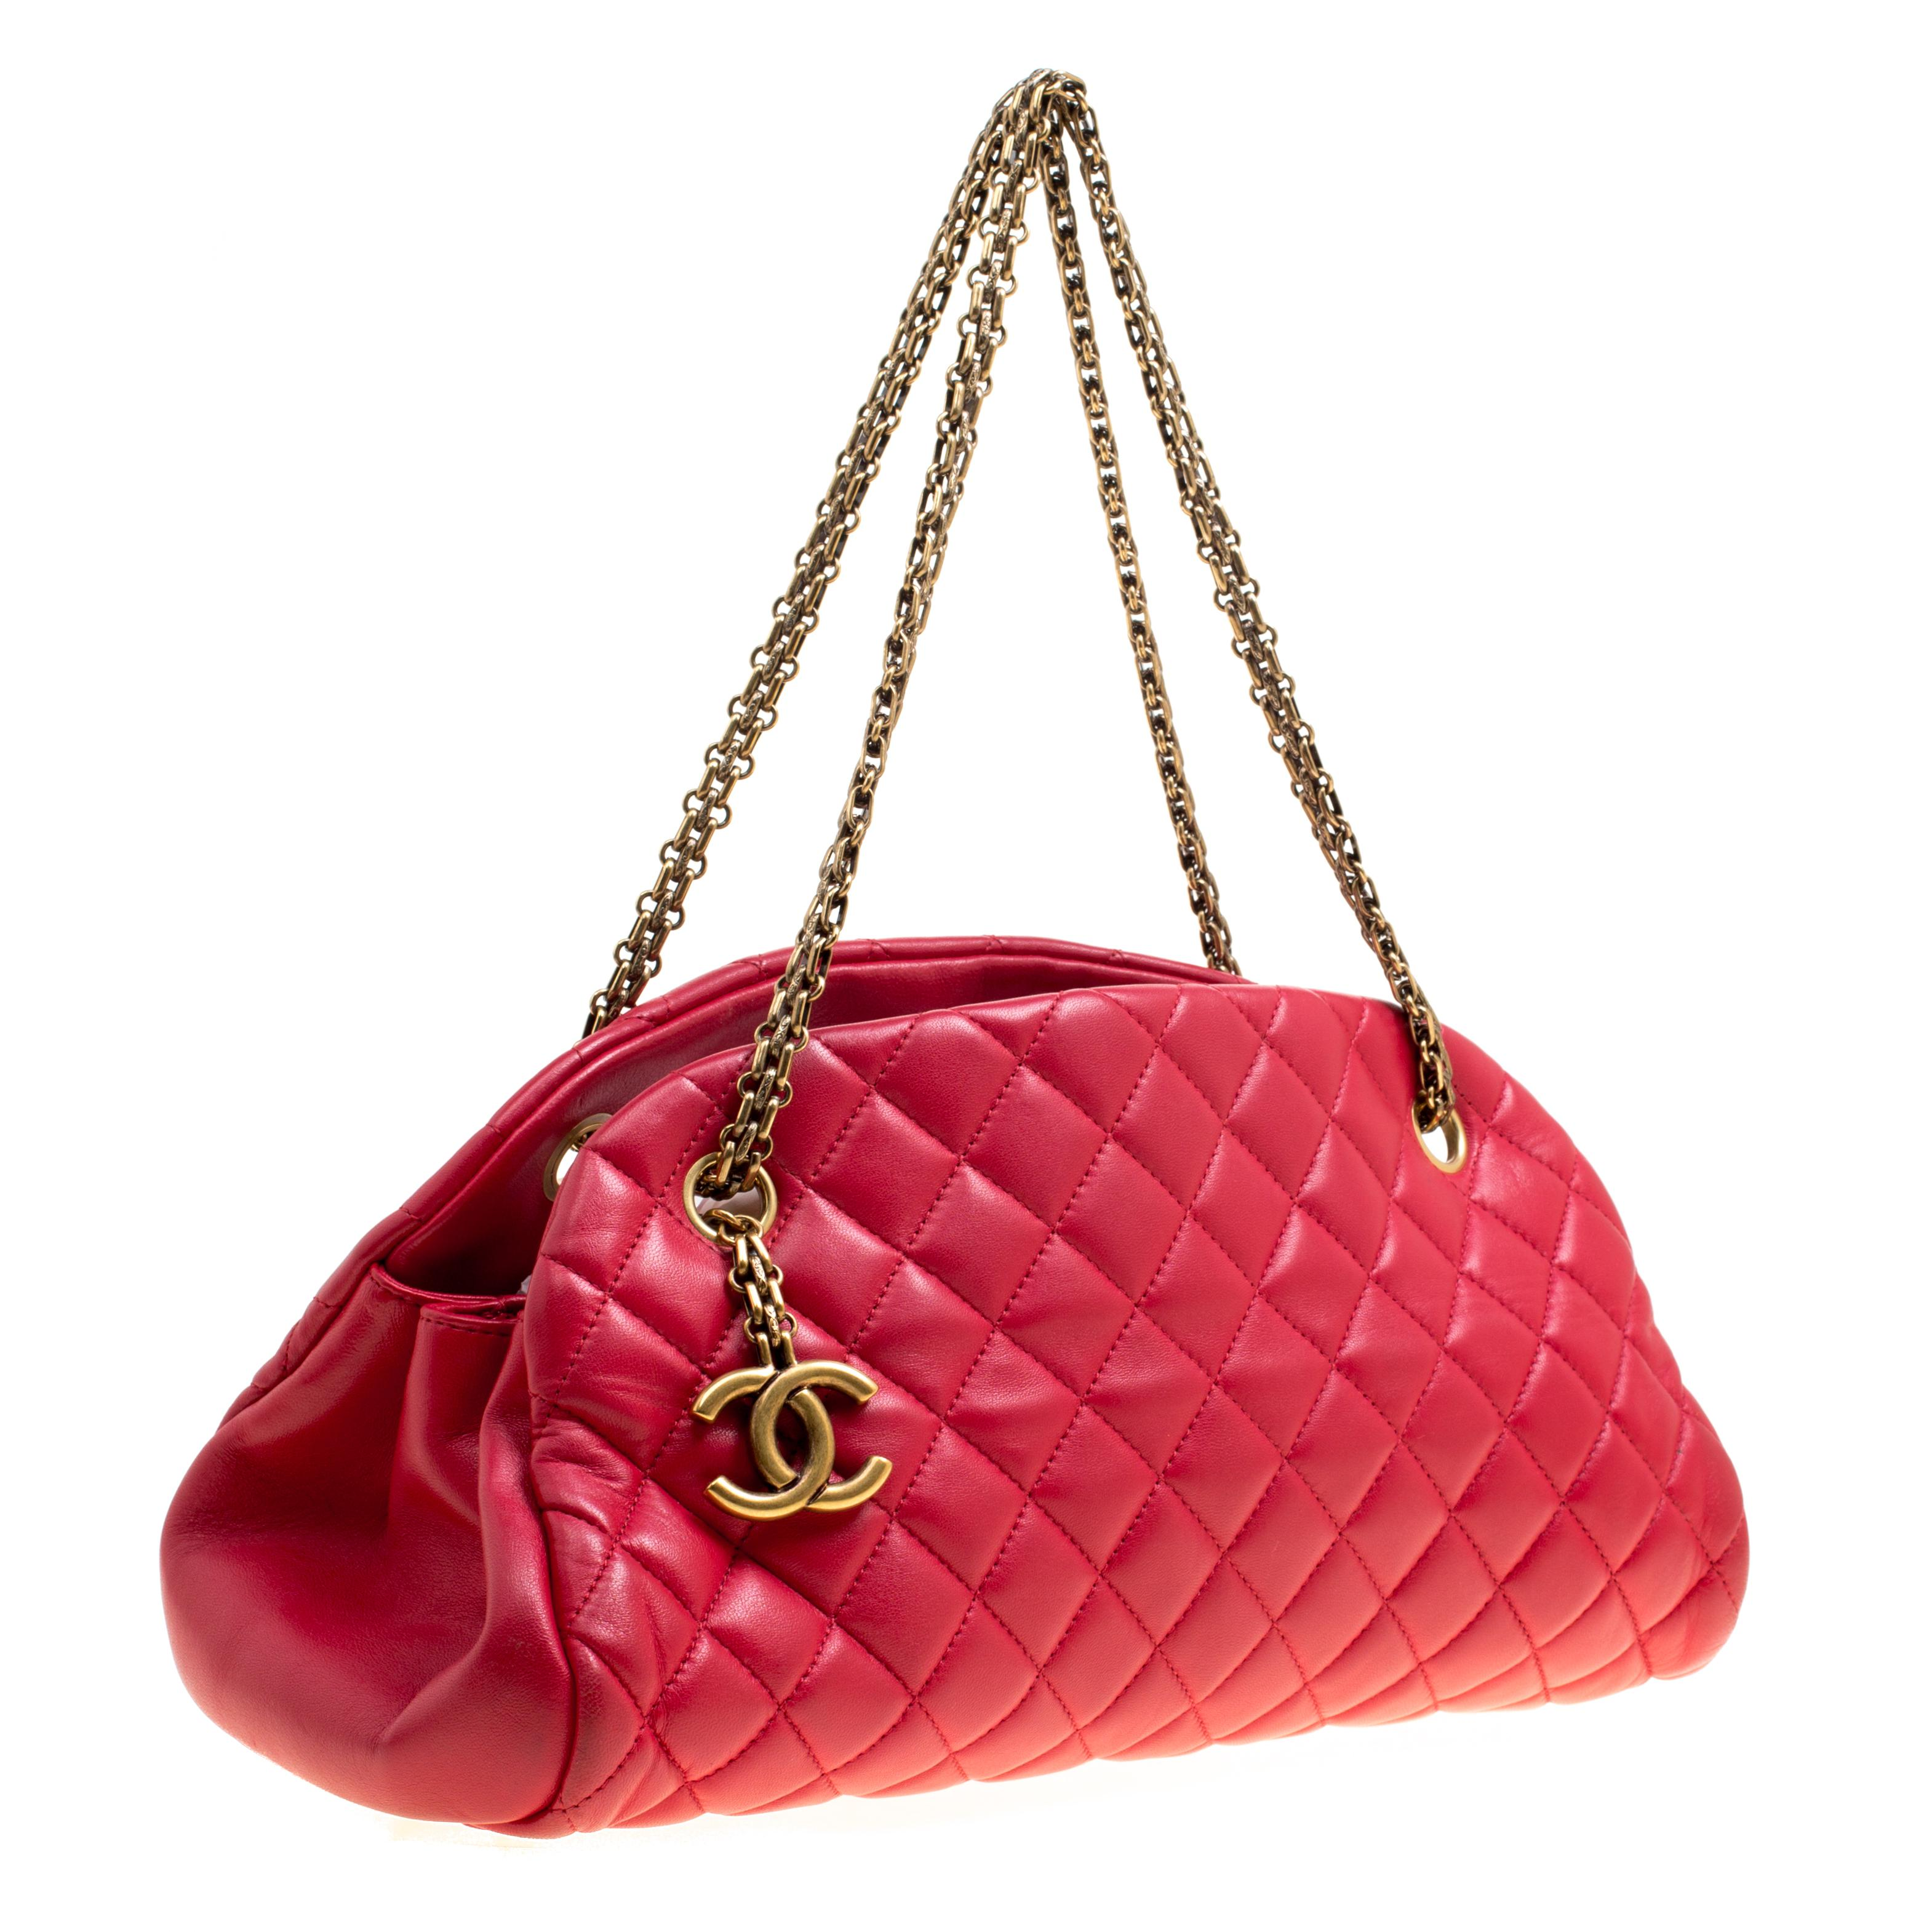 06a418f4a0b3 Chanel - Red Quilted Leather Medium Just Mademoiselle Bowling Bag - Lyst.  View fullscreen